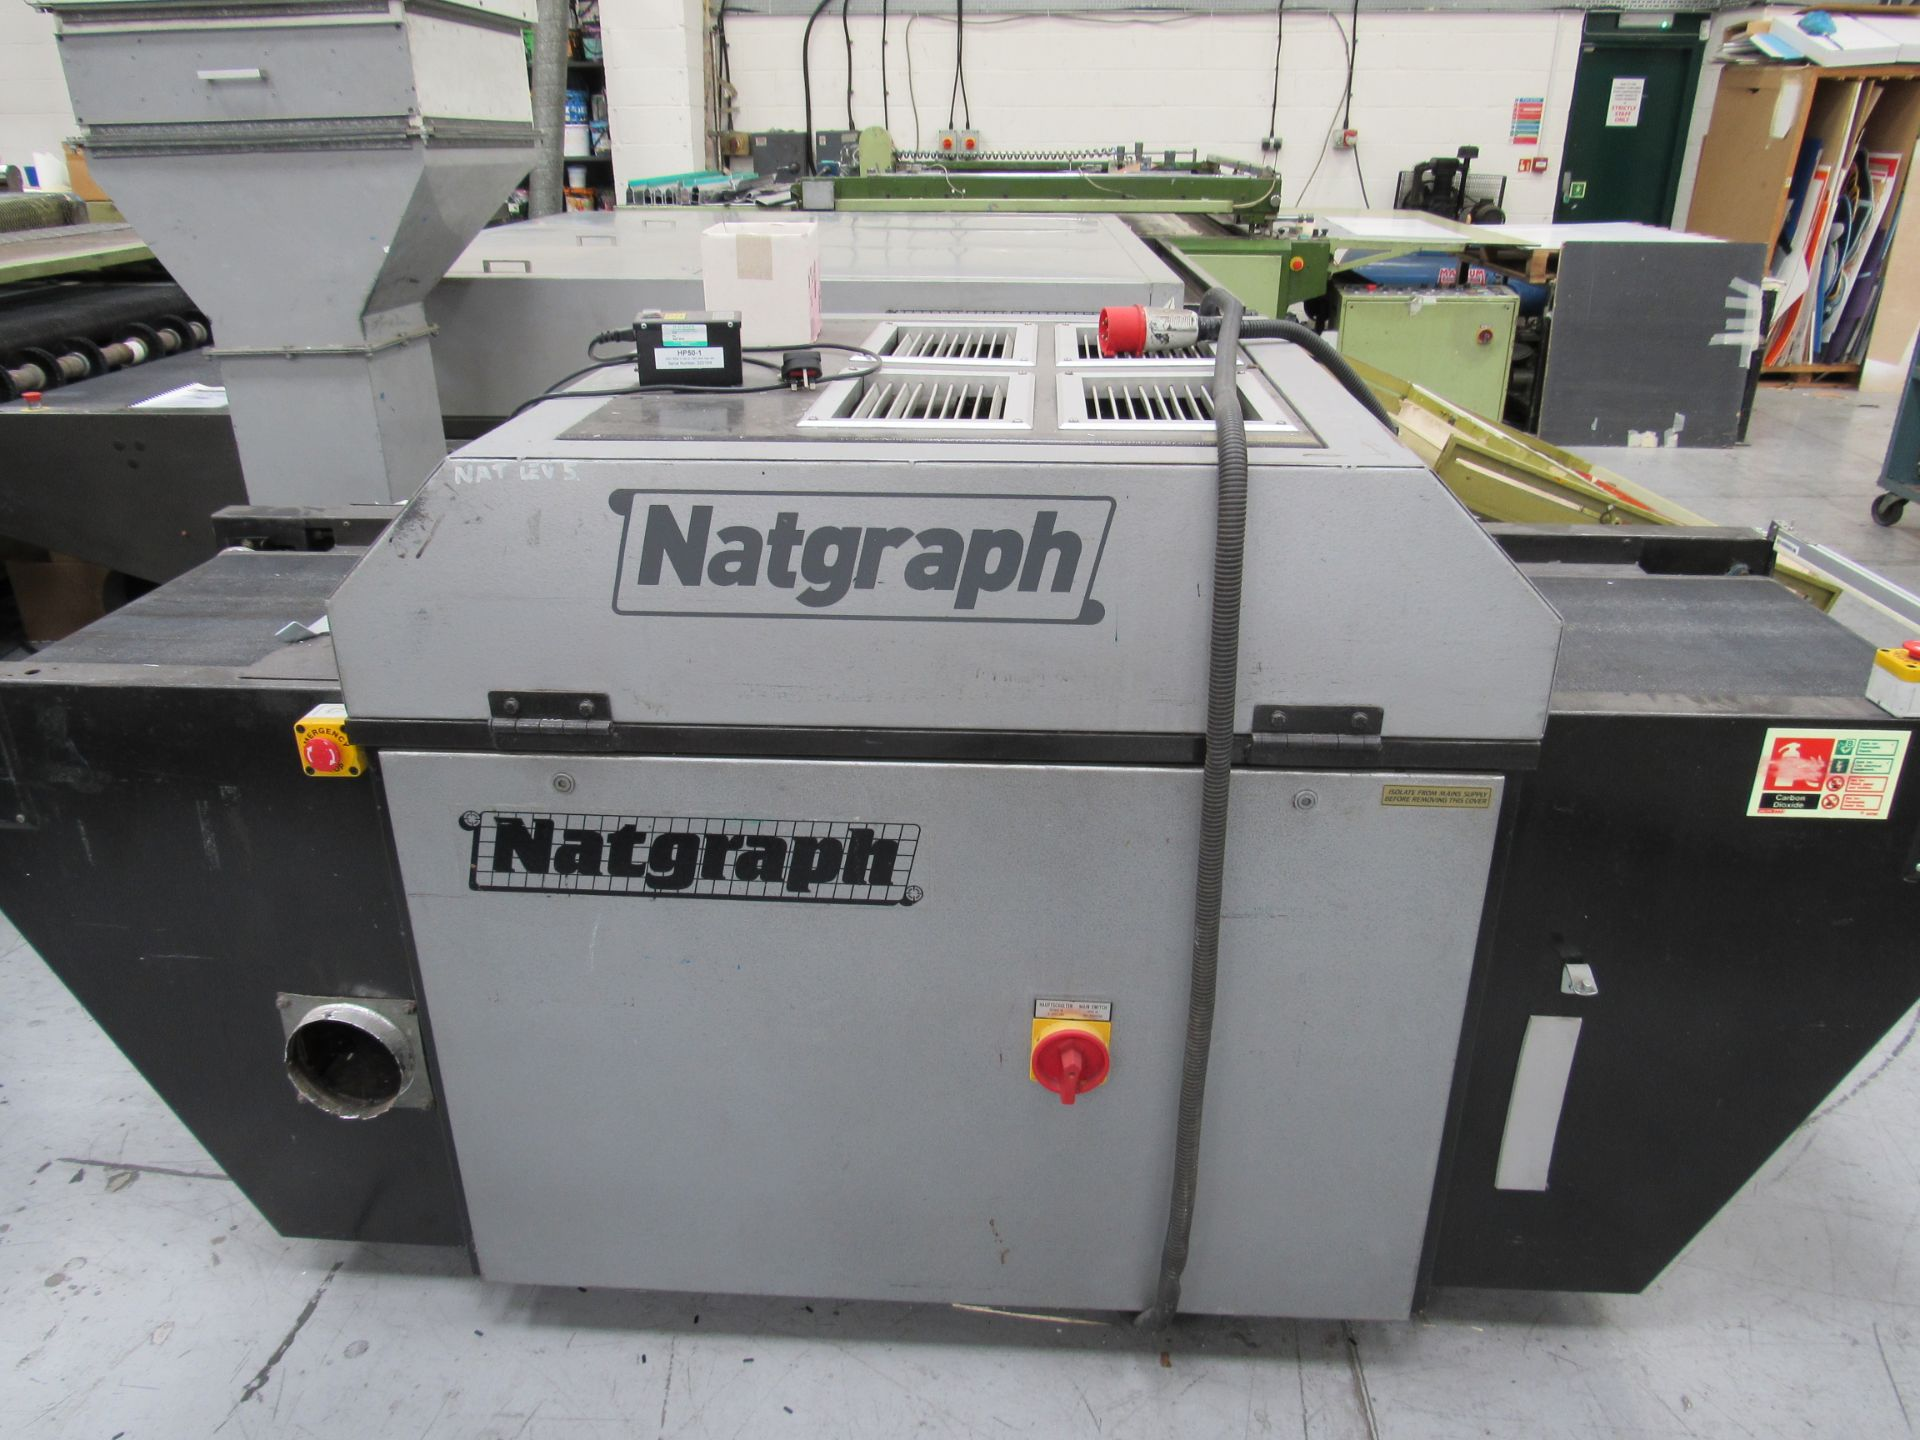 Natgraph UV Drier with Belt, 6985 Hours, Lamp Changed at 6795 Hours - Image 4 of 4